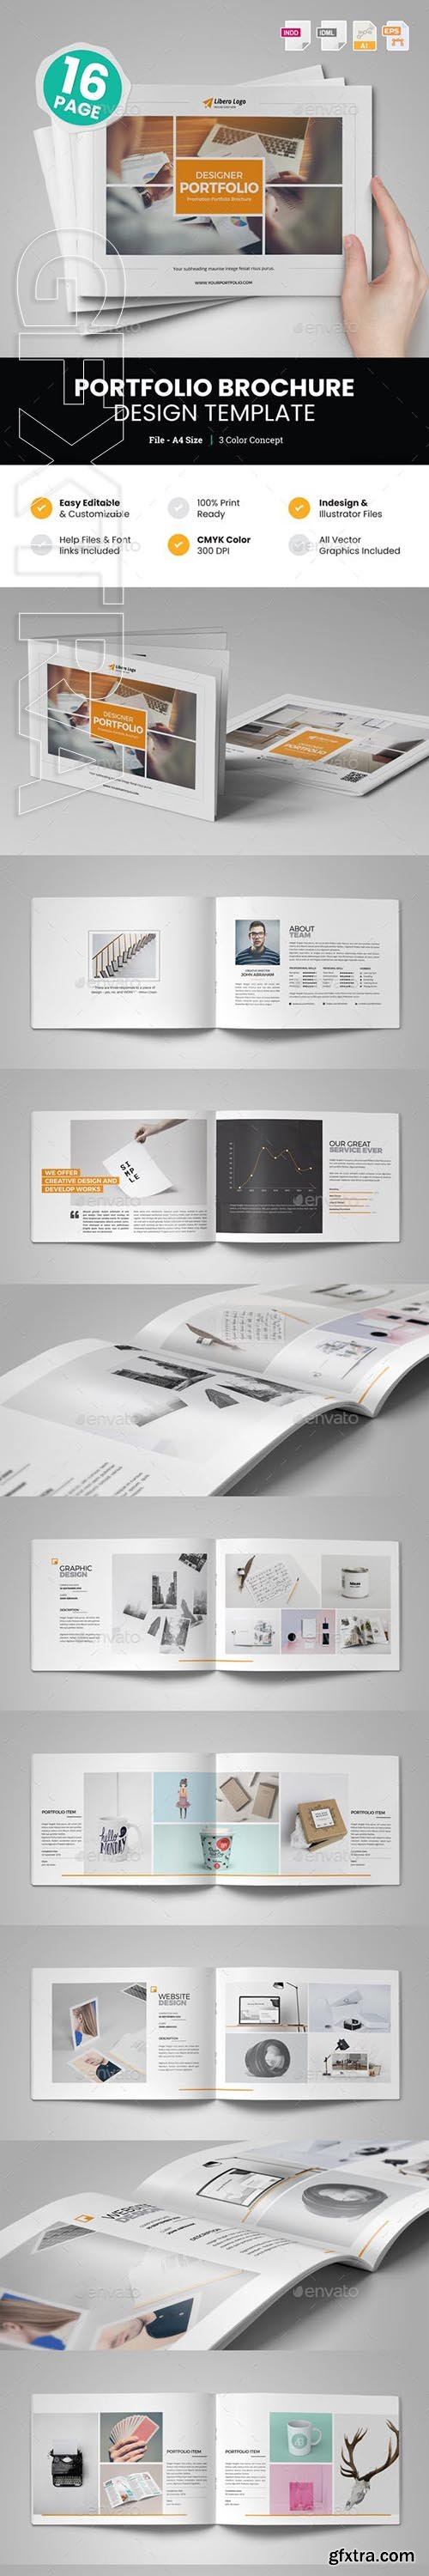 GraphicRiver - Portfolio Brochure Design v6 23796827